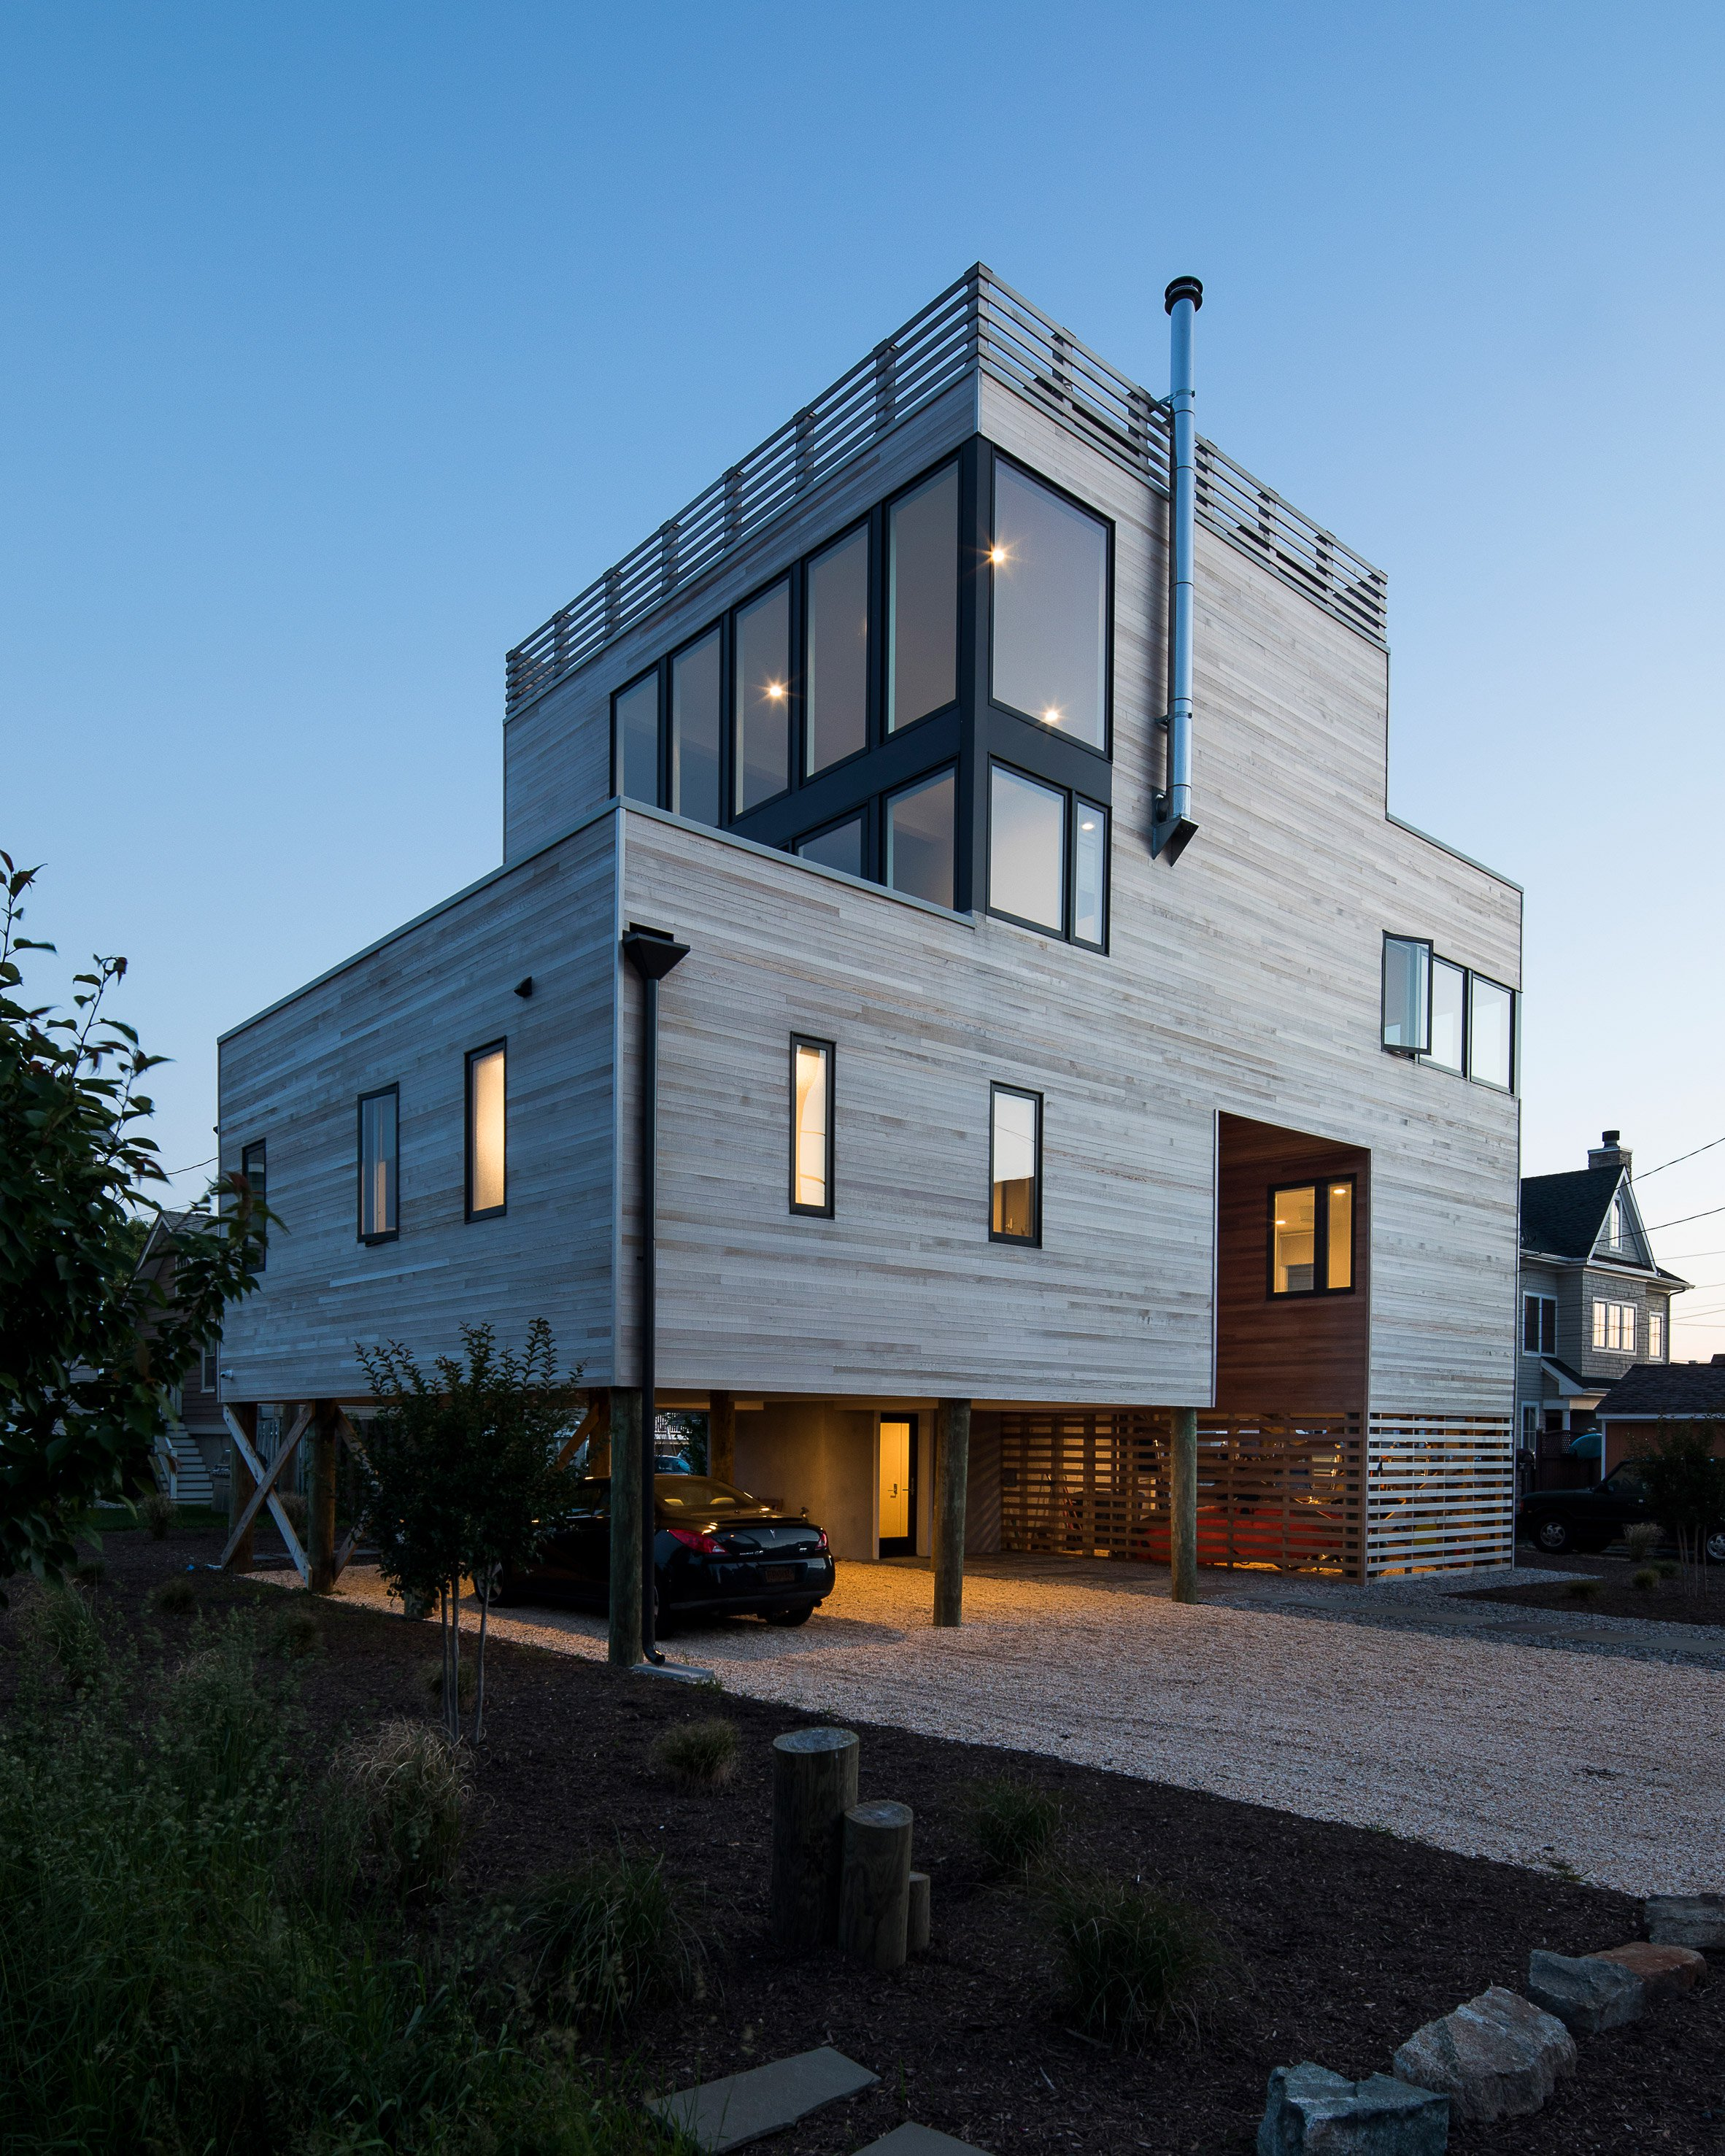 Sea Bright House by Jeff Jordan Architects overlooks the Jersey Shore